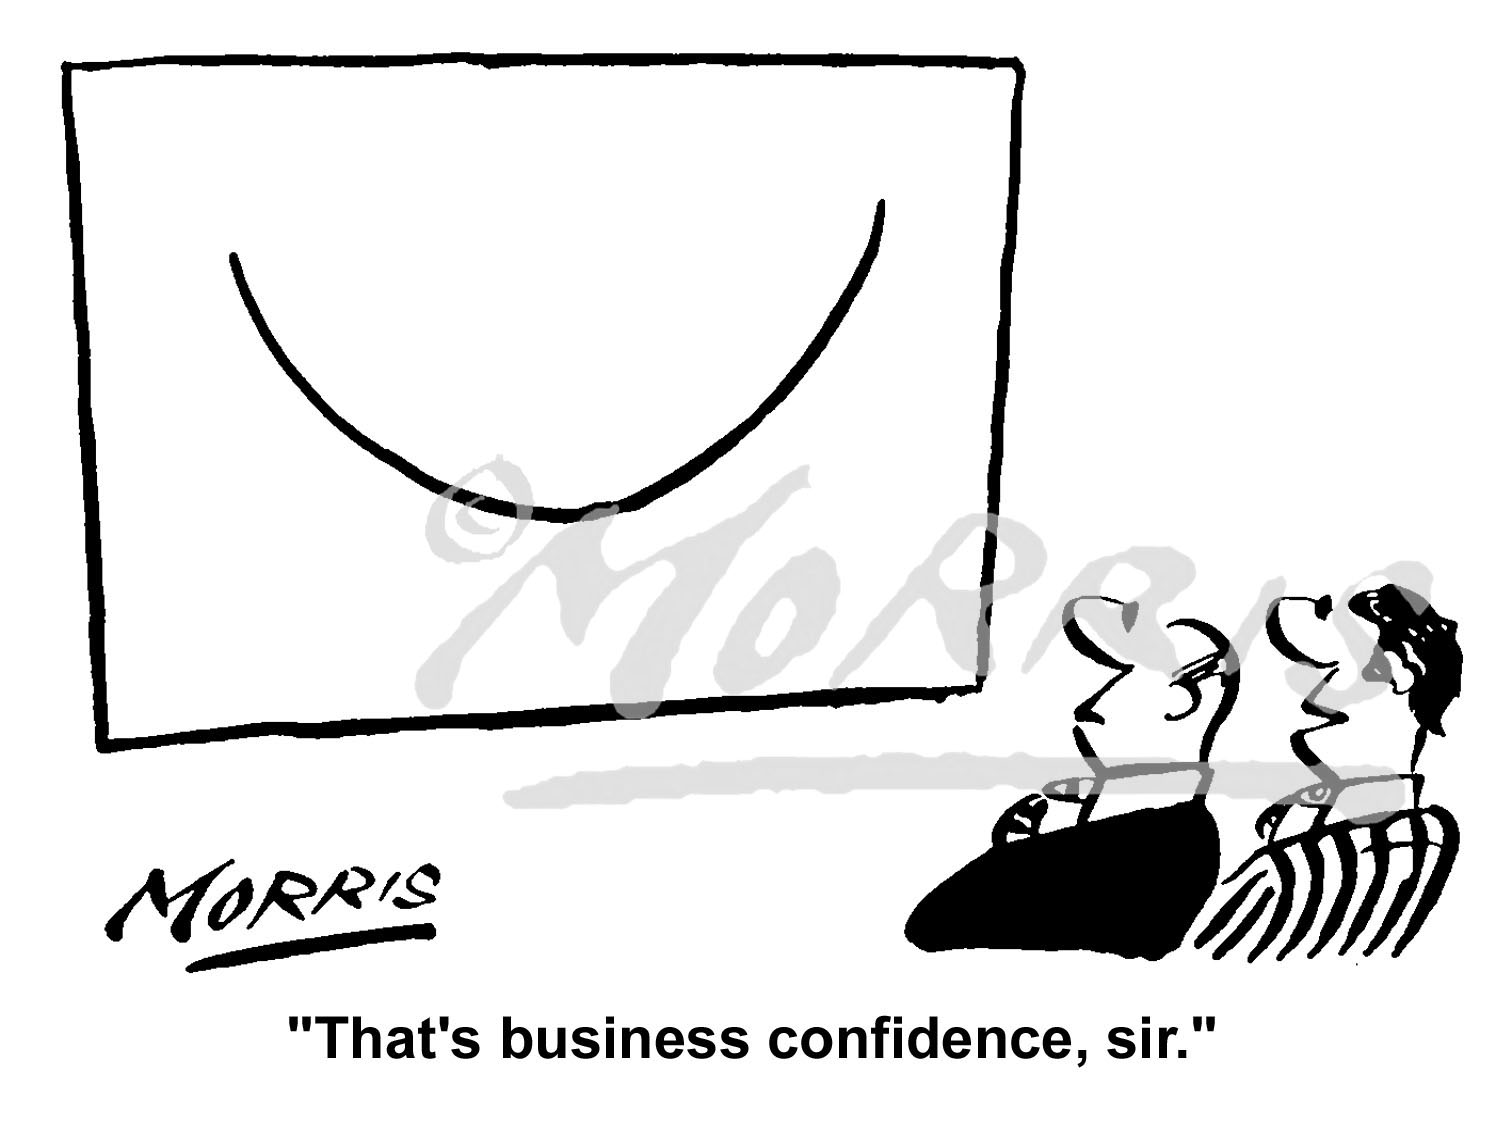 Business confidence cartoon, office comic – Ref 1660bw